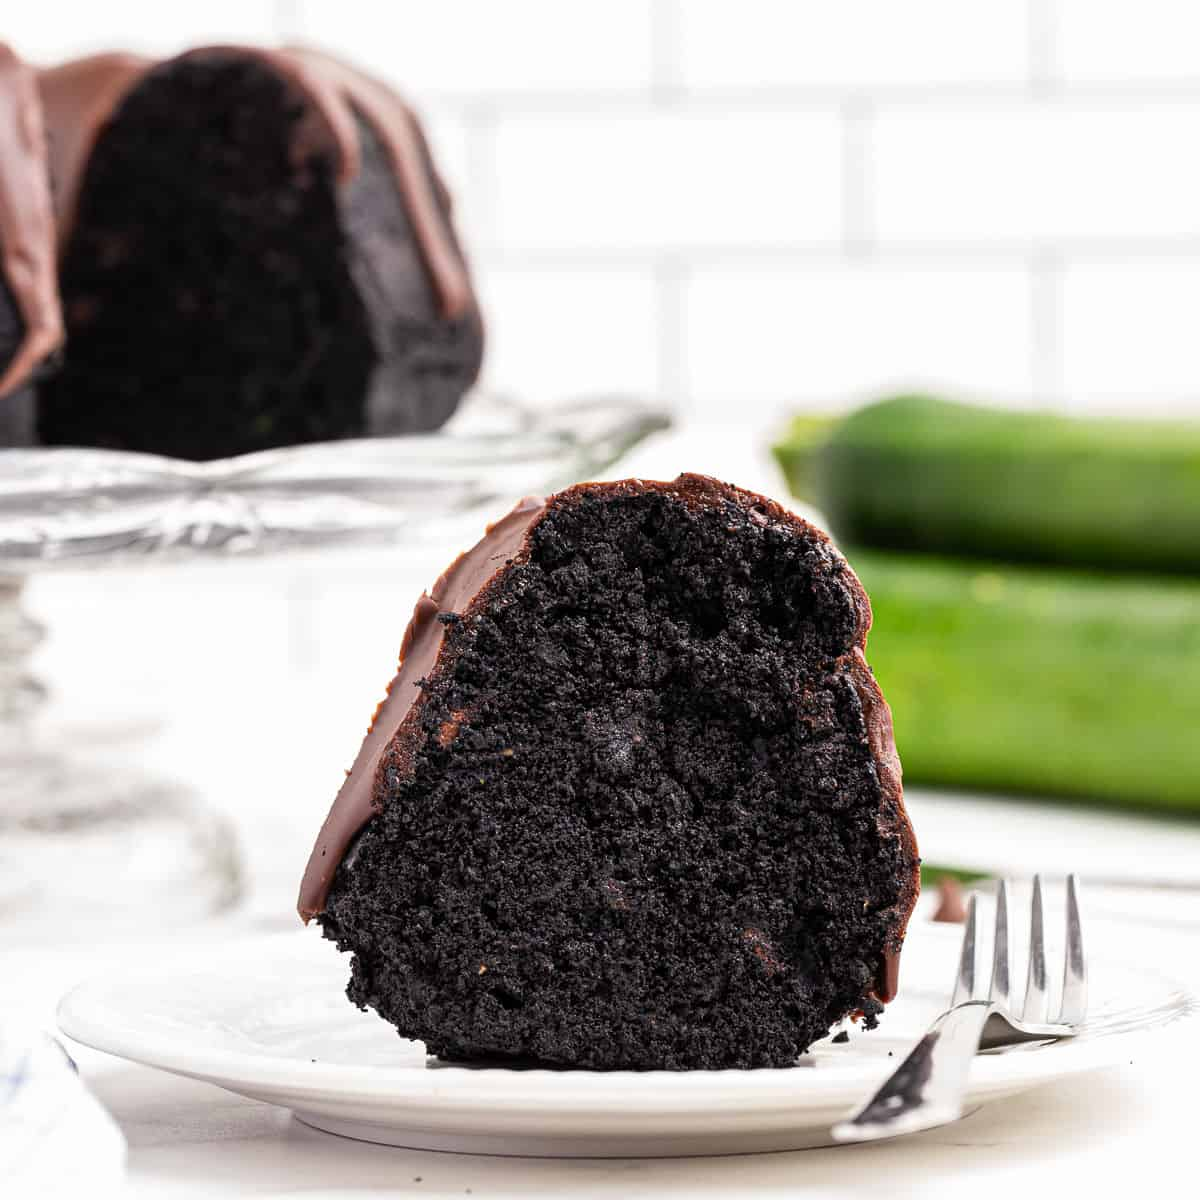 Slice of chocolate zucchini cake on a white plate.